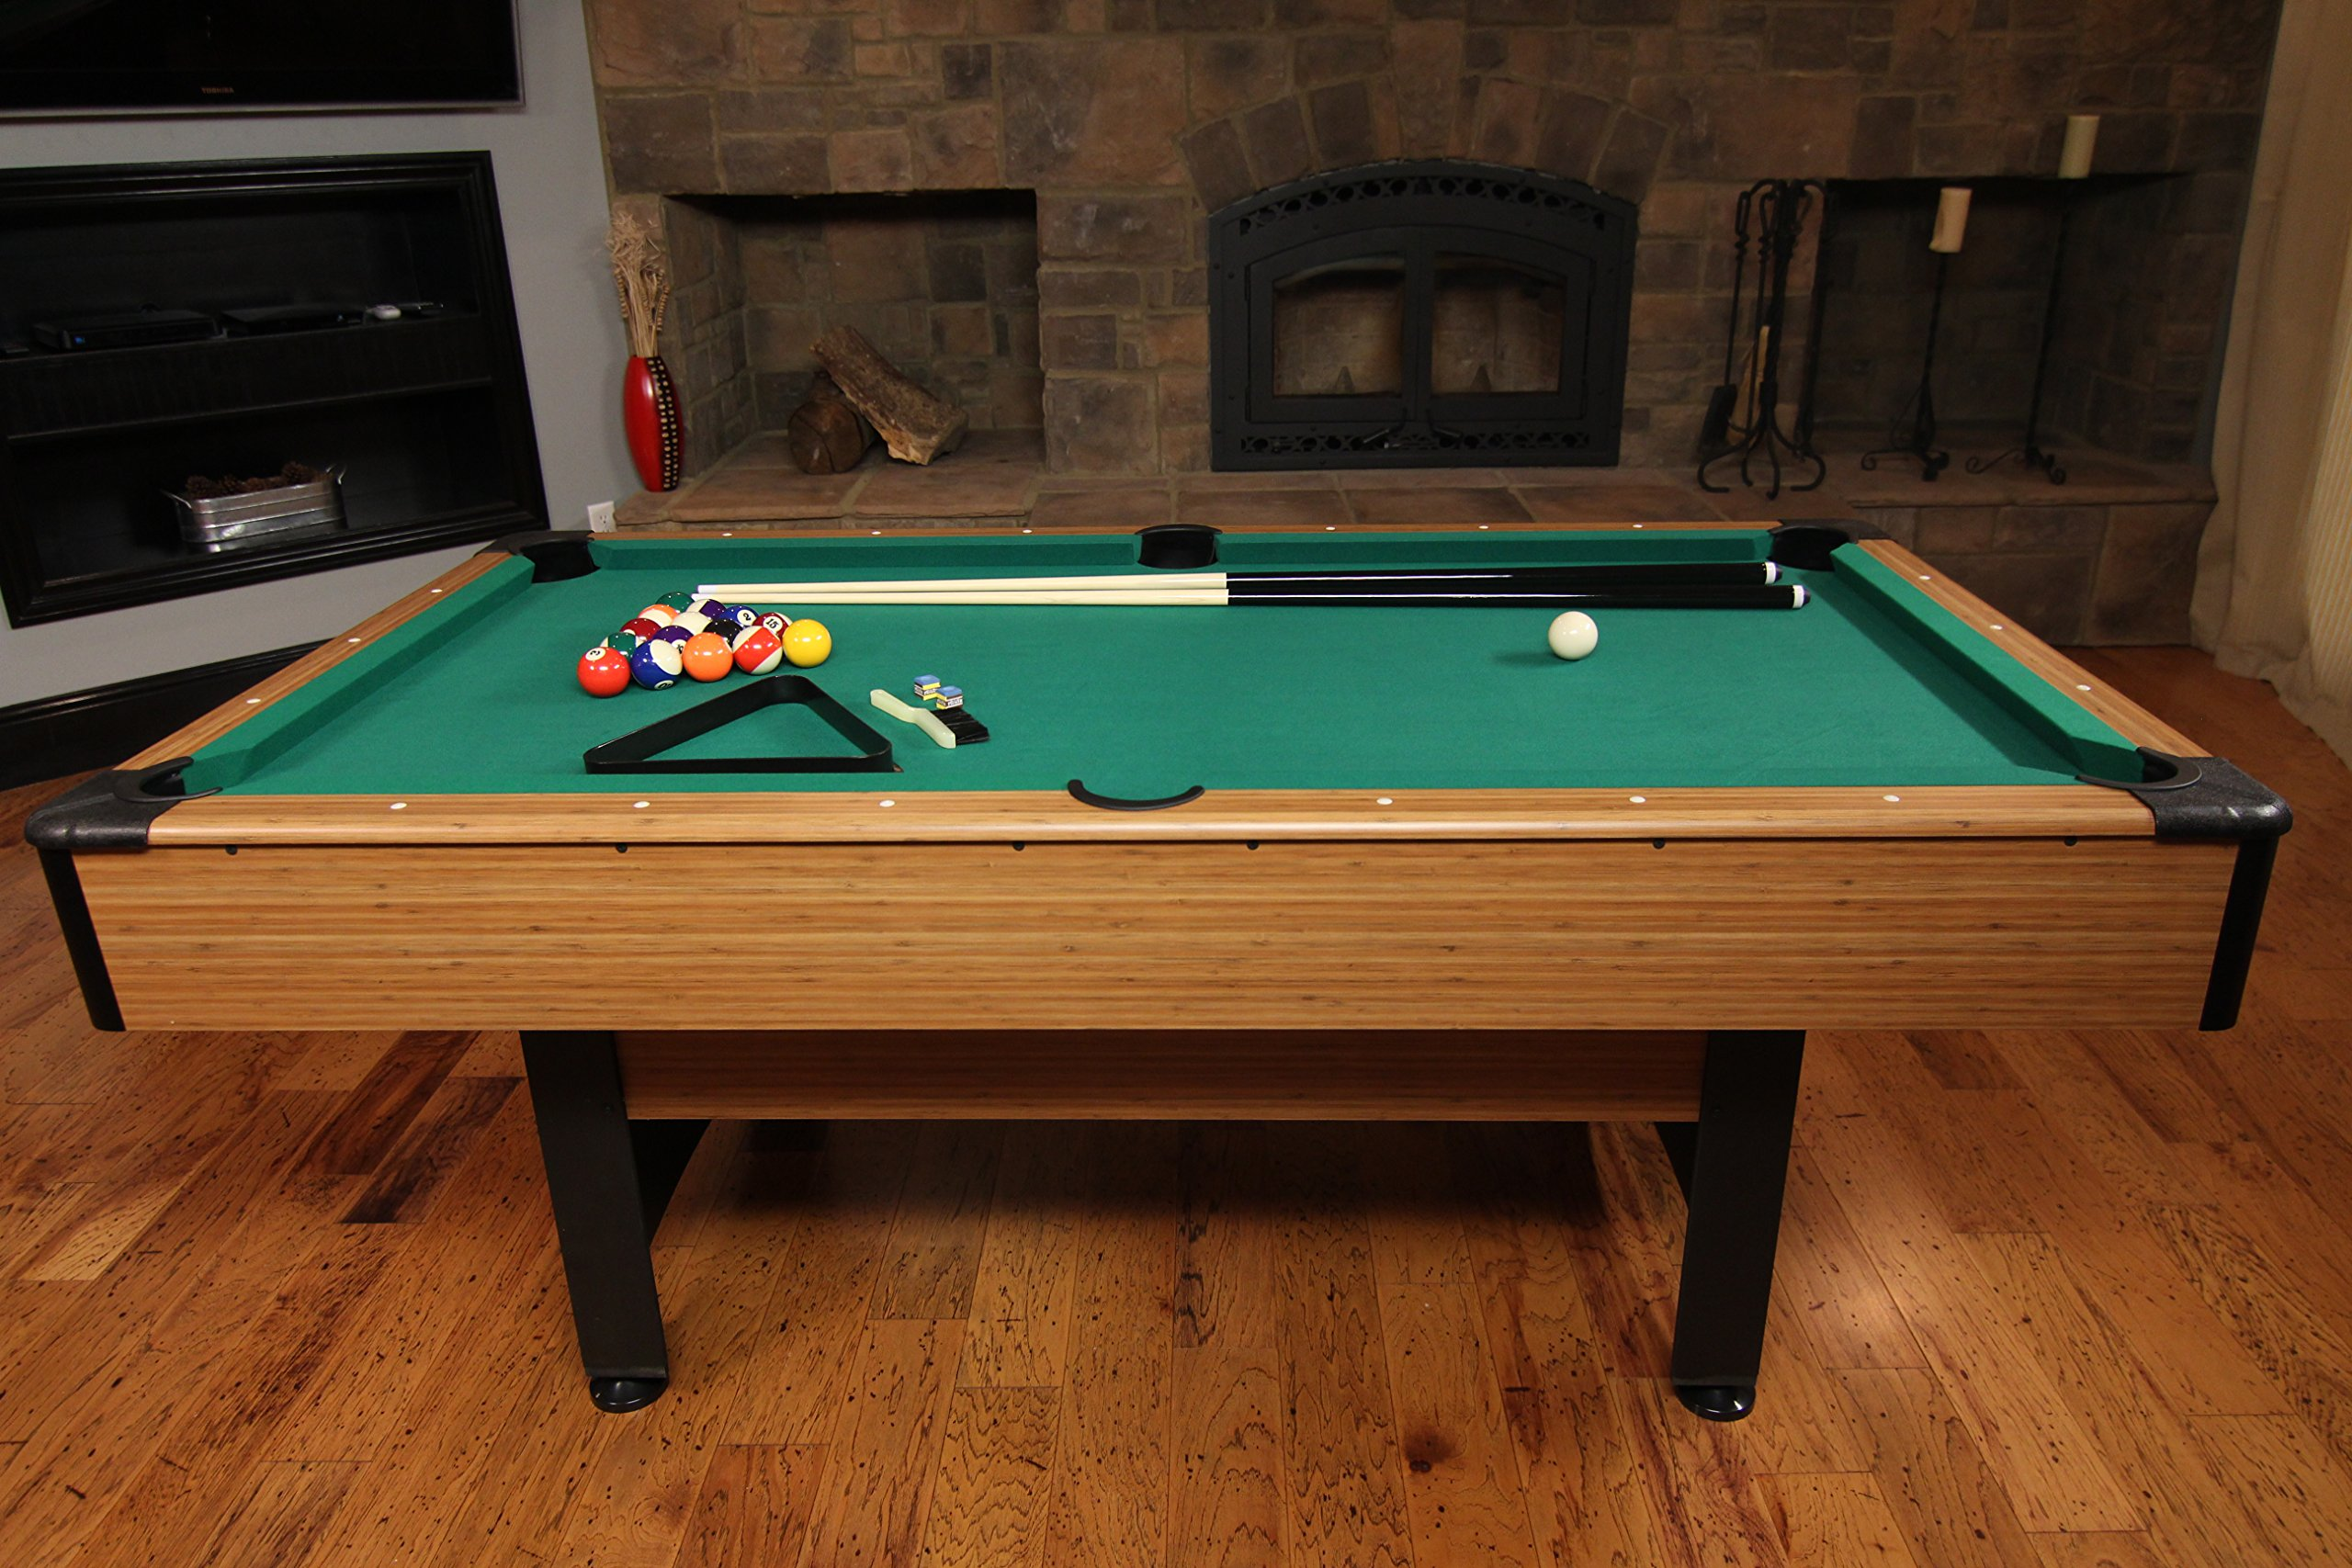 Mizerak Dynasty Space Saver 6.5' Billiard Table with Compact Design to Fit in Smaller Rooms, Leg Levelers for Perfectly Even Playing Surface, Double-sealed MDF Play-bed for Consistent Roll and Automatic Ball Return for Quick Game Reset by Mizerak (Image #3)